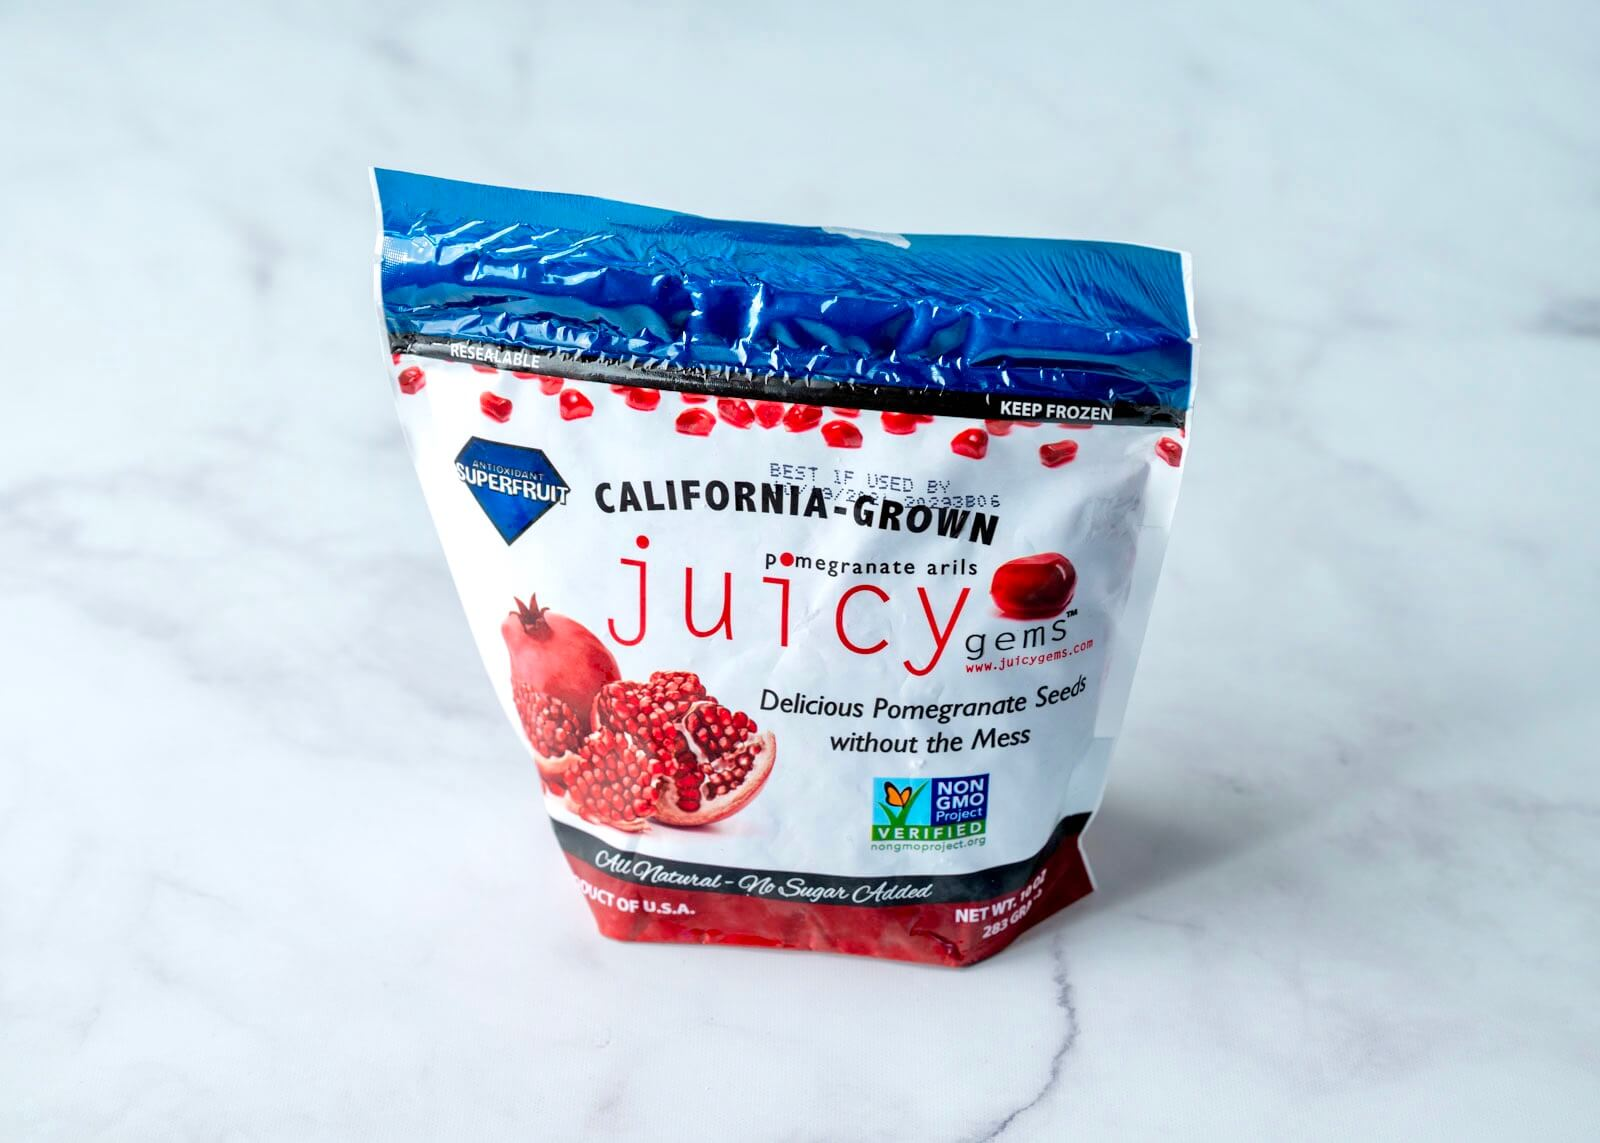 Frozen pomegranate offers an easy, mess-free alternative to extracting the juicy arils from the whole fruit yourself. It's also a convenient alternative when fresh isn't in season.